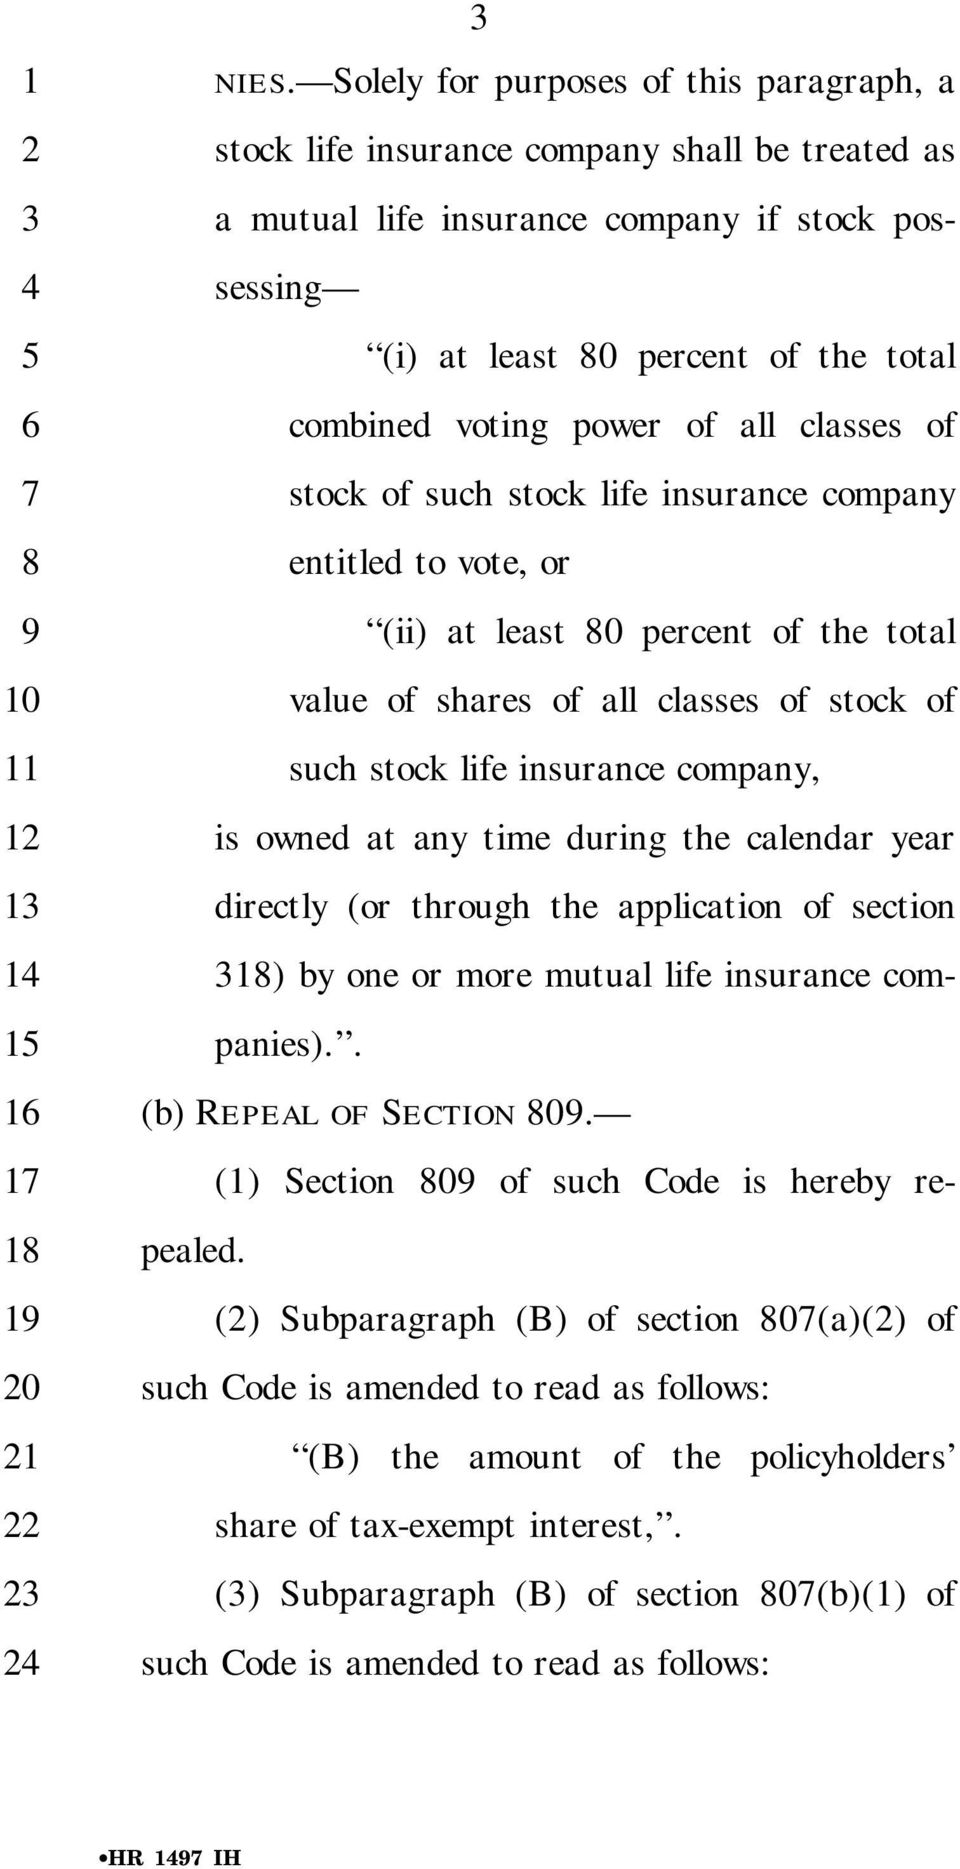 of all classes of stock of such stock life insurance company entitled to vote, or (ii) at least 0 percent of the total value of shares of all classes of stock of such stock life insurance company, is